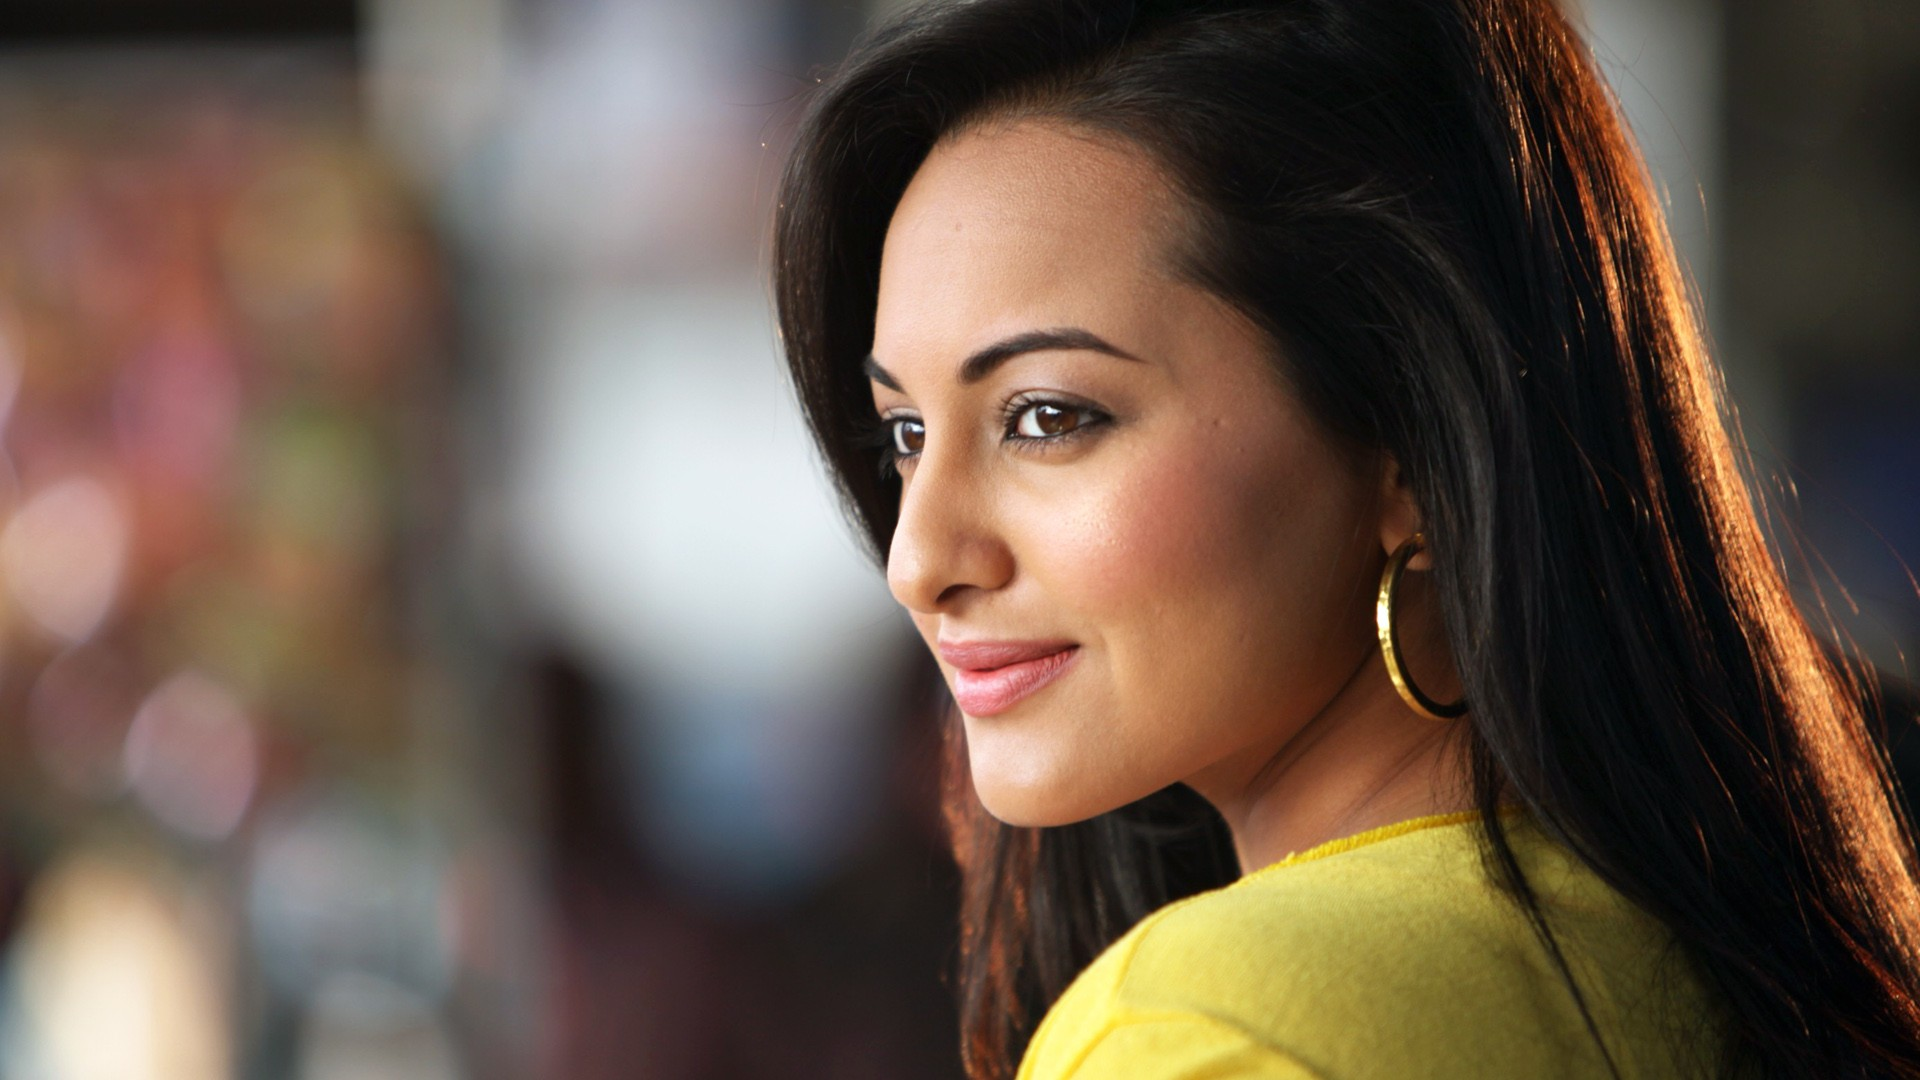 Cute Indian Actress Hd Wallpapers 2013 Sonakshi Sinha Wallpapers Hd Wallpapers Id 12759